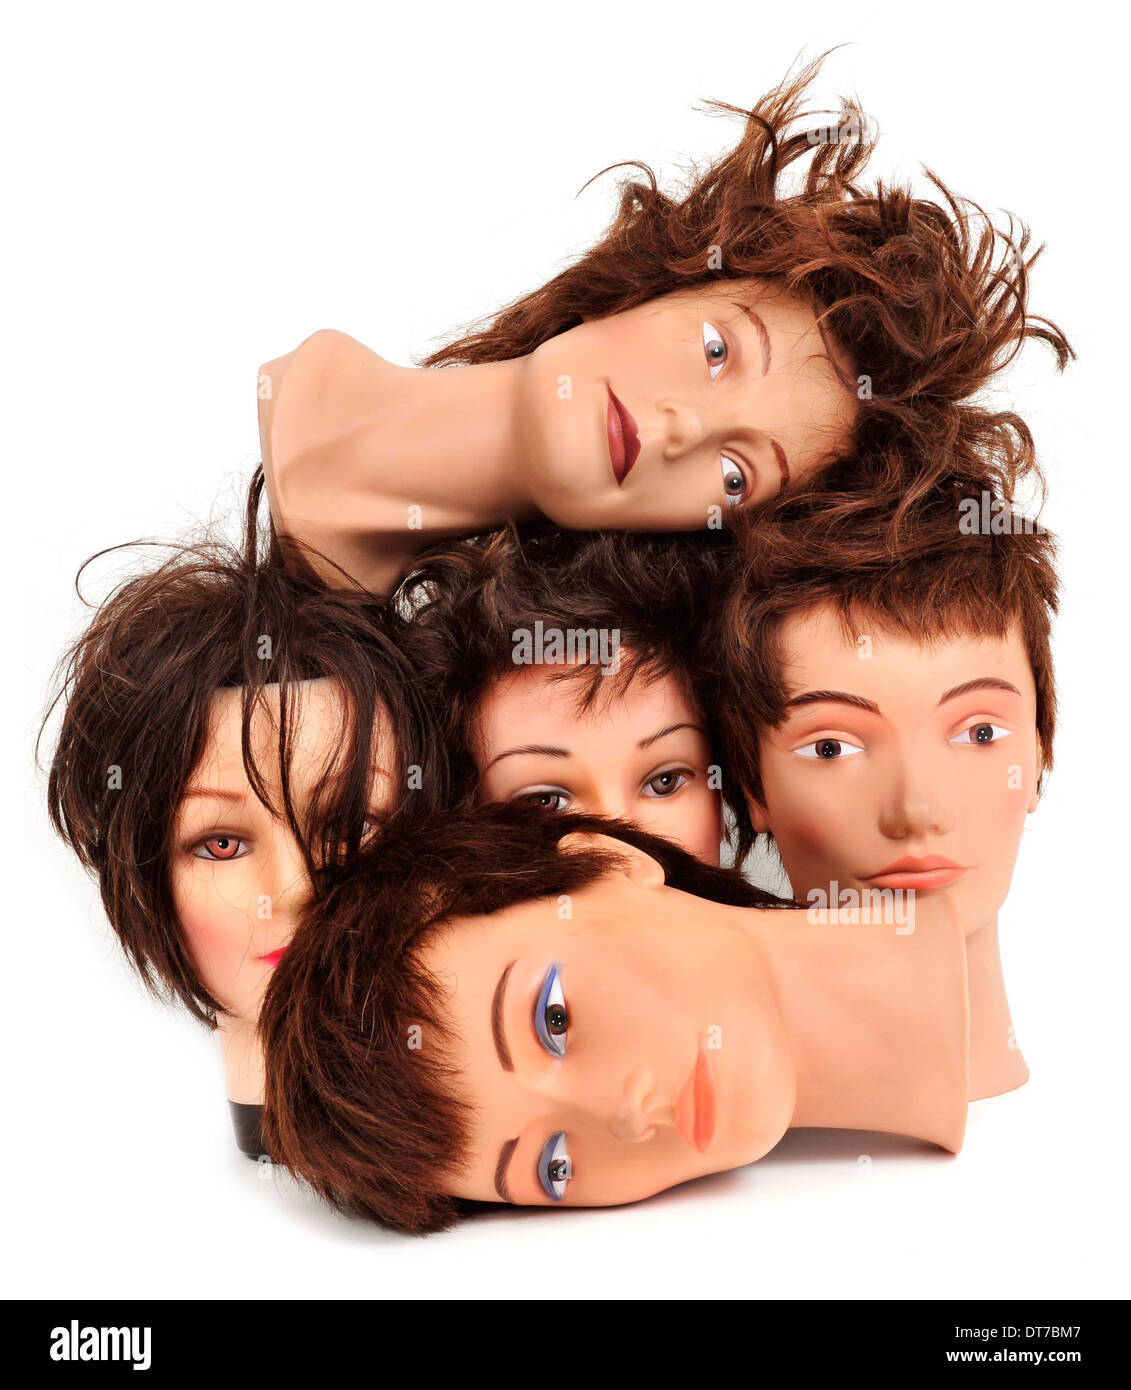 some different mannequin heads on a white background - Stock Image